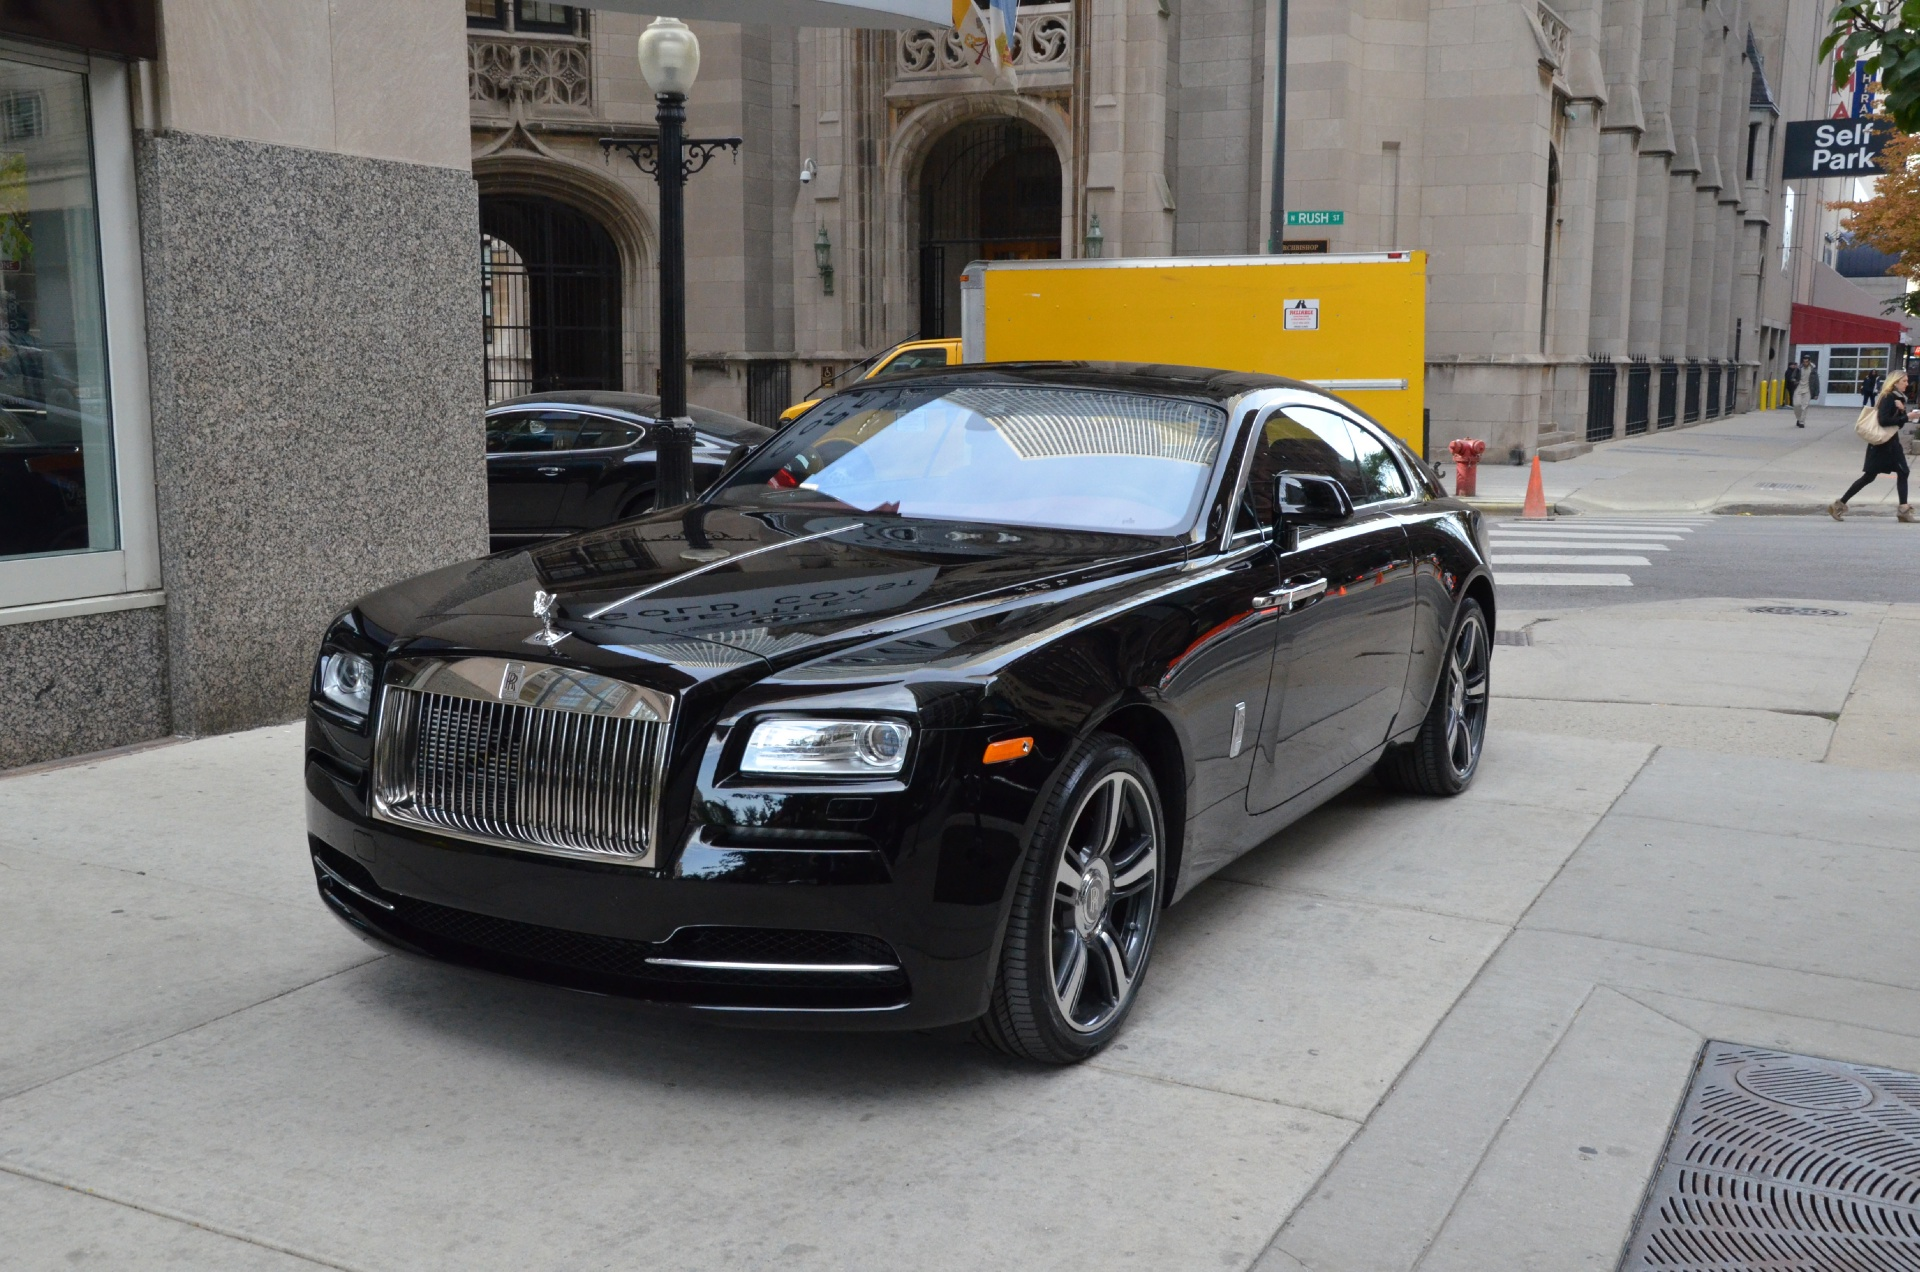 brief review of 2014 rolls-royce wraith - image #8